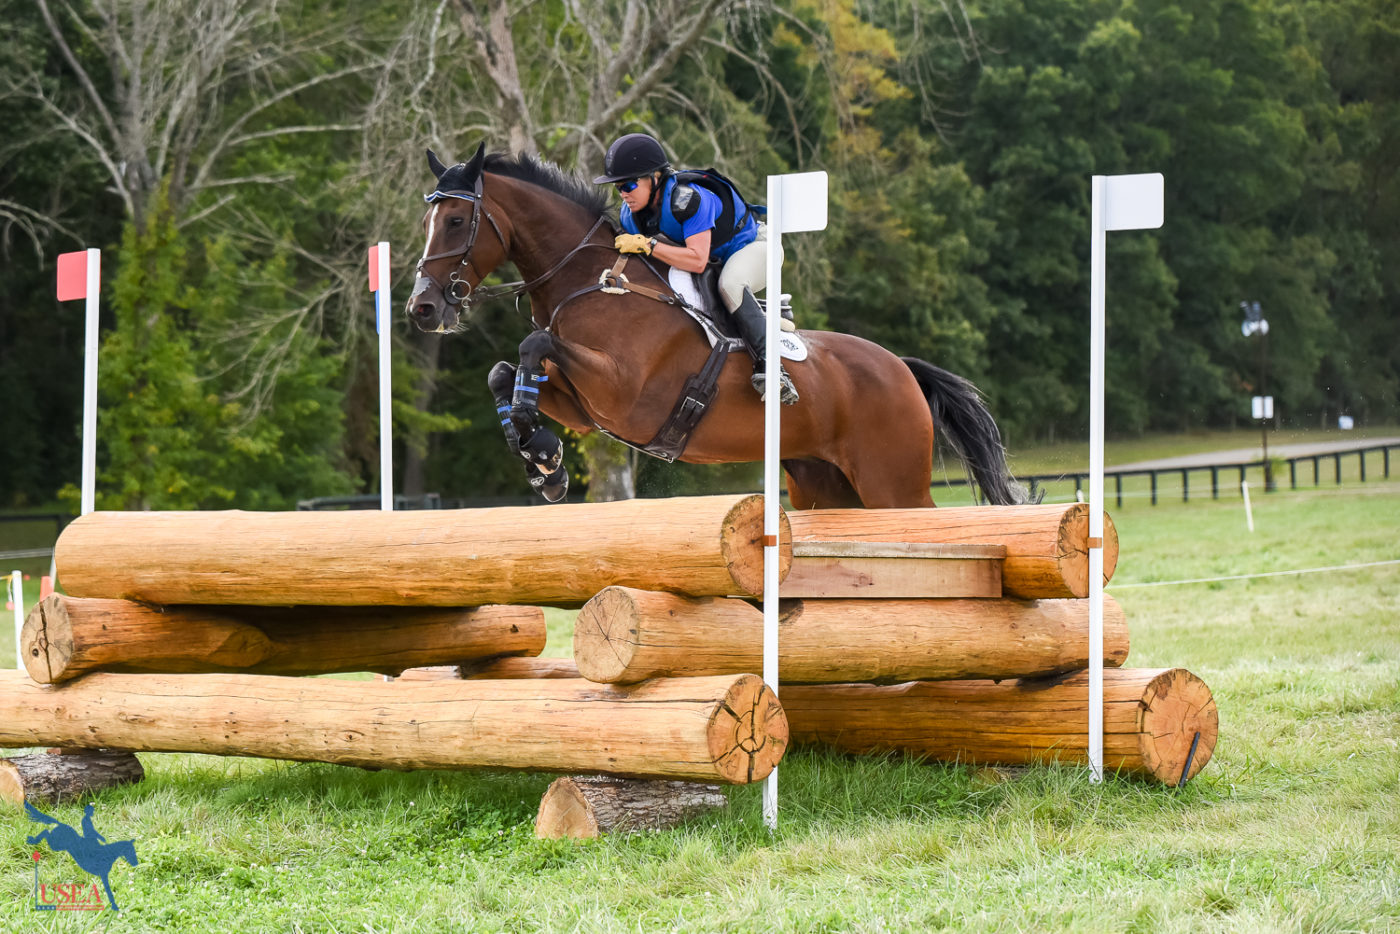 2nd - Colleen Rutledge and Covert Rights - 31.5